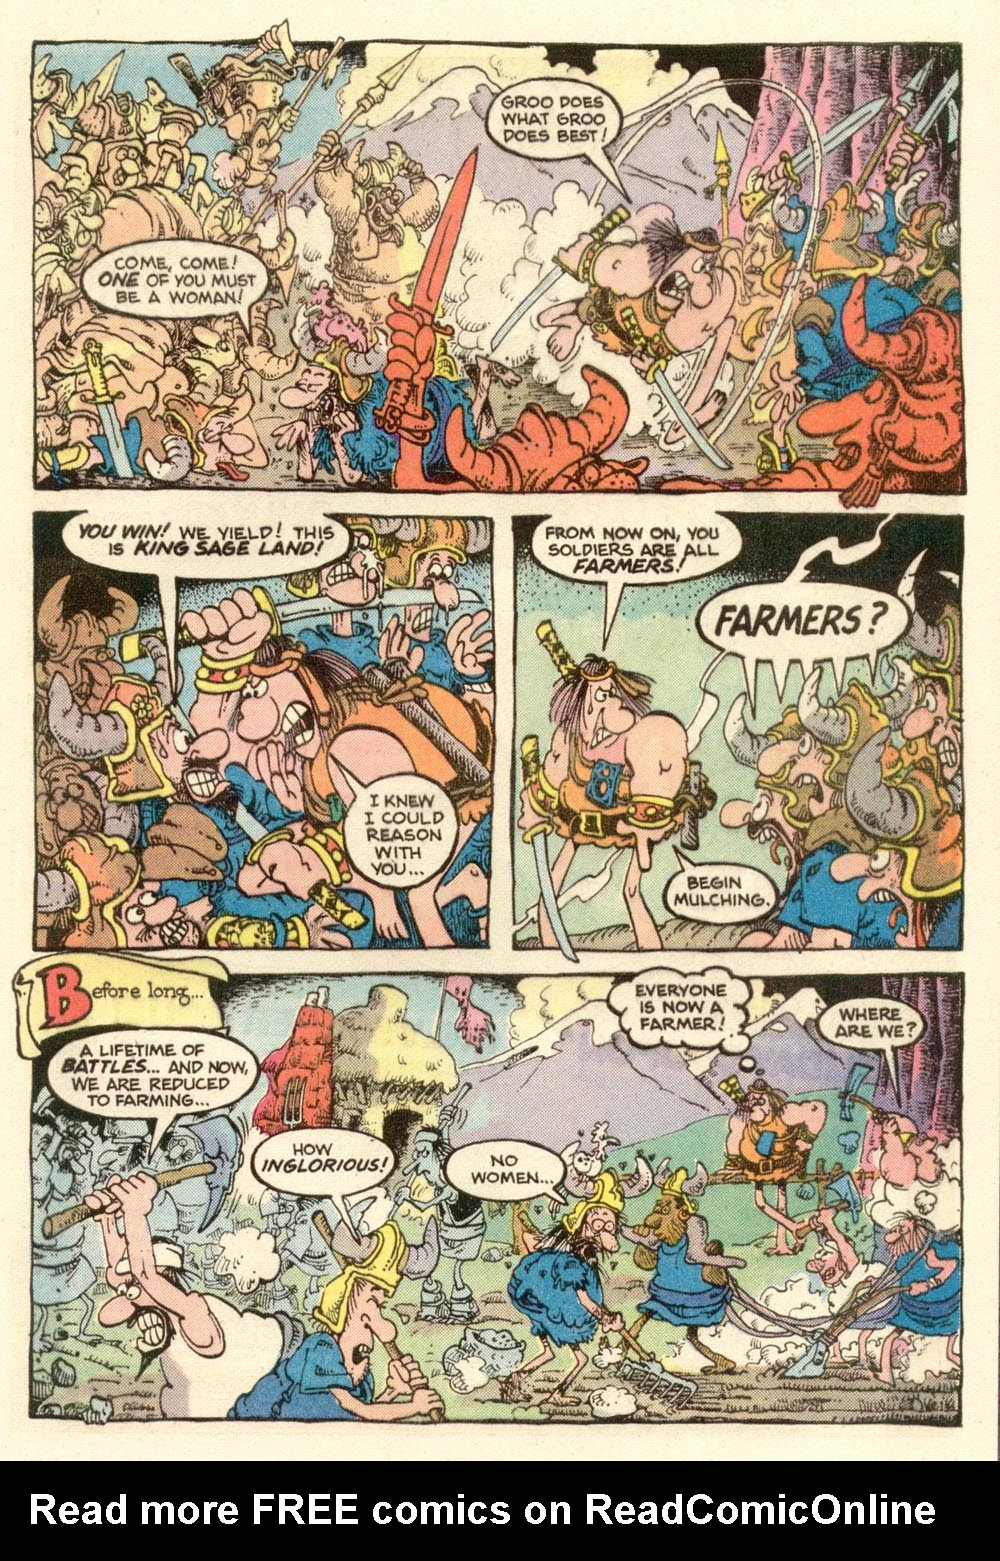 Read online Sergio Aragonés Groo the Wanderer comic -  Issue #13 - 21